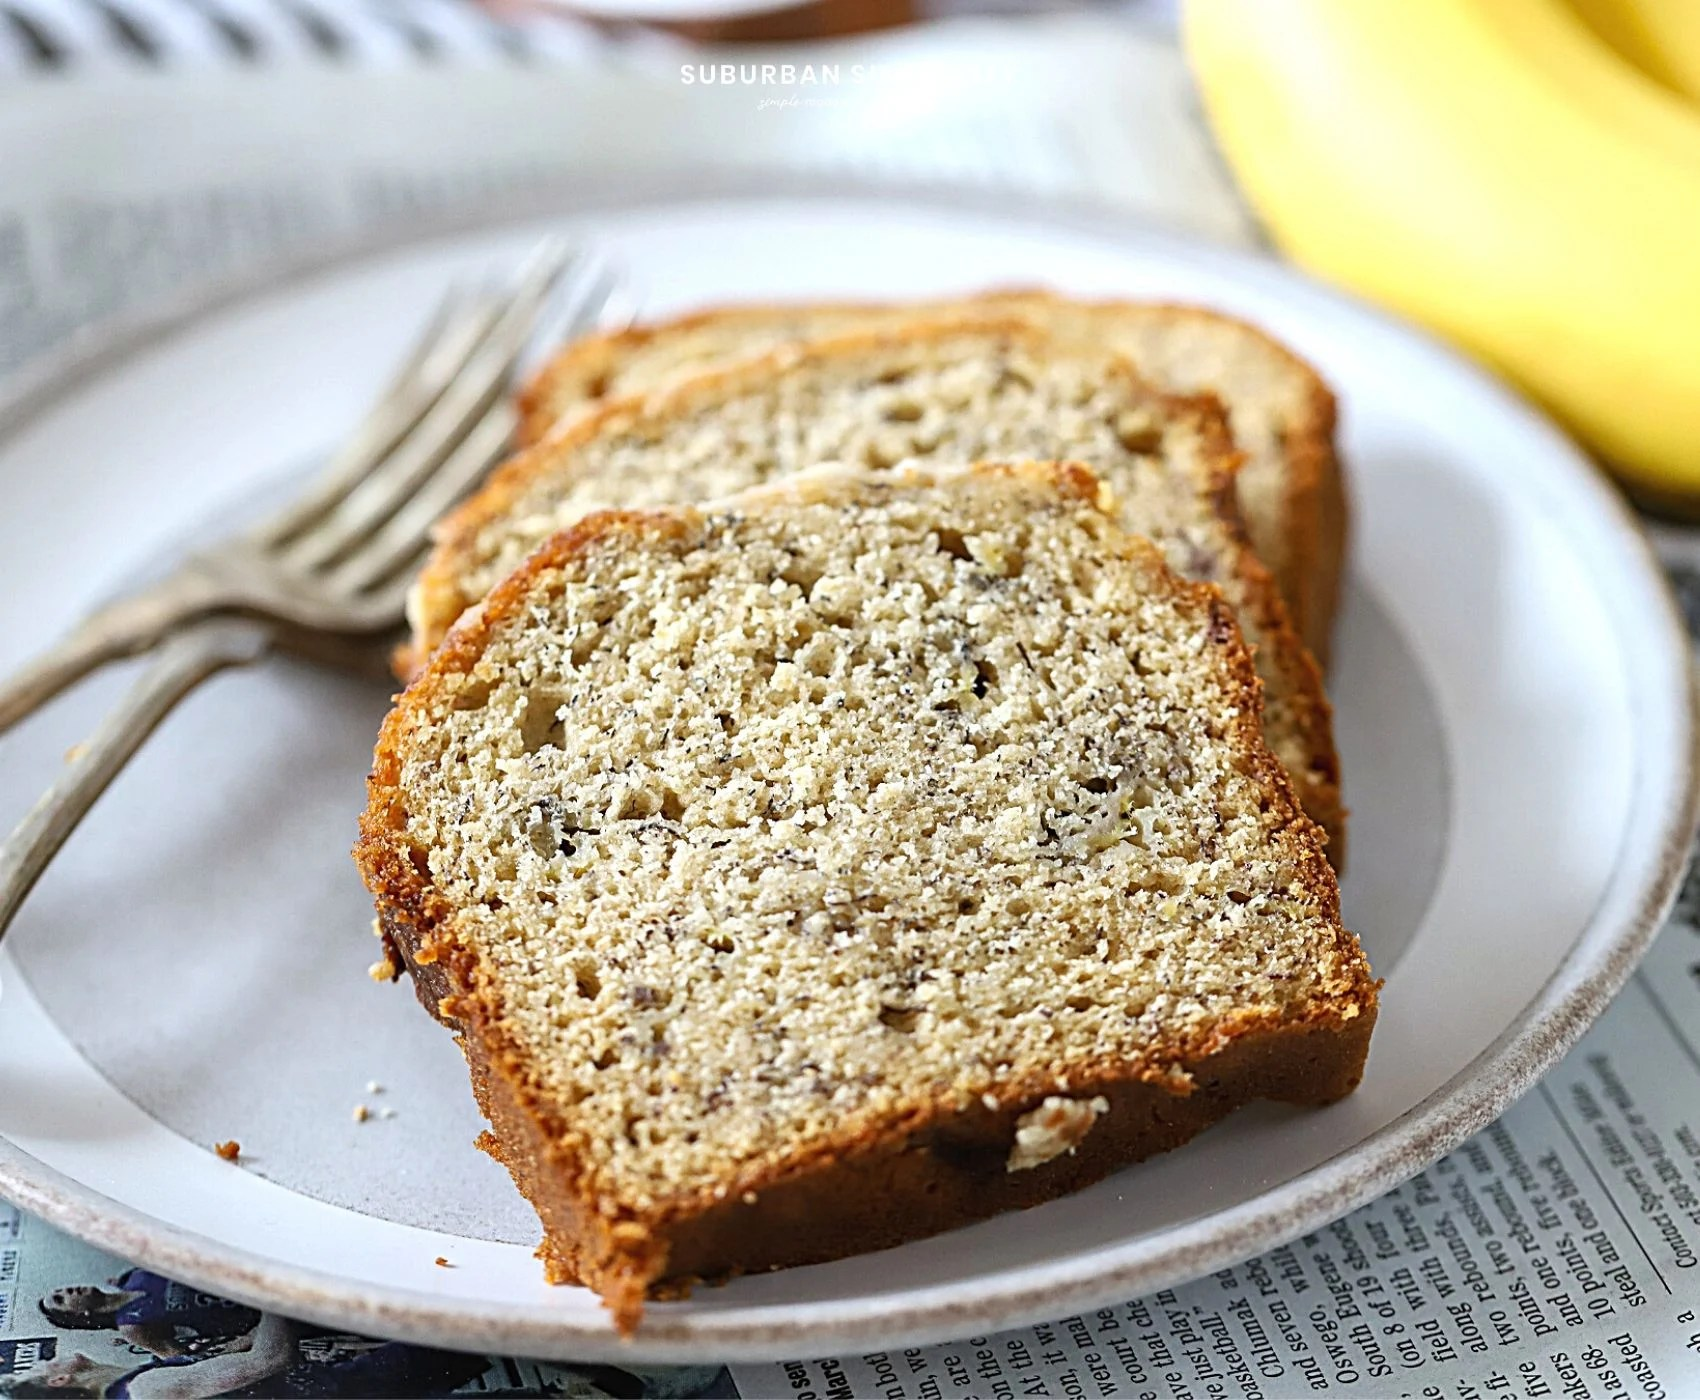 This is the best banana bread recipe you'll ever make. Moist and delicious every time! And it's infused with just the right amount of banana flavor. Homemade banana bread really is the best!